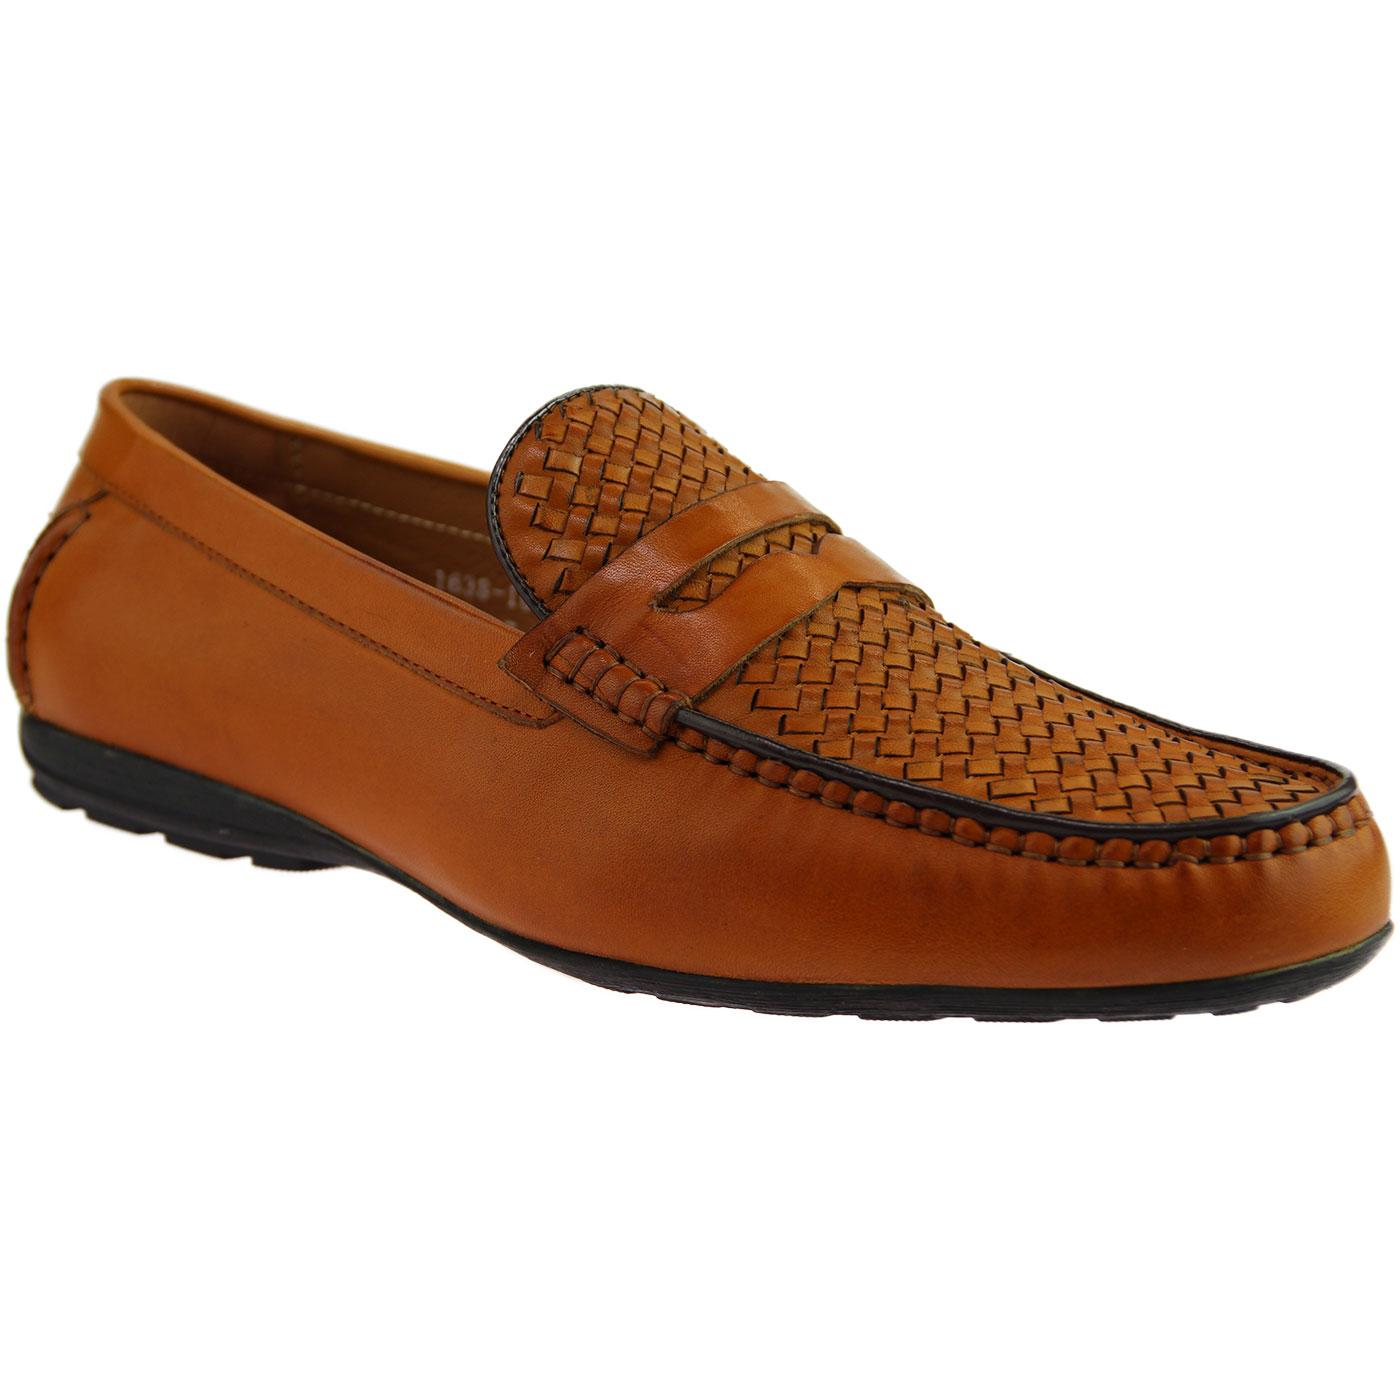 Ilkay SERGIO DULETTI Basket Weave Driving Shoes T